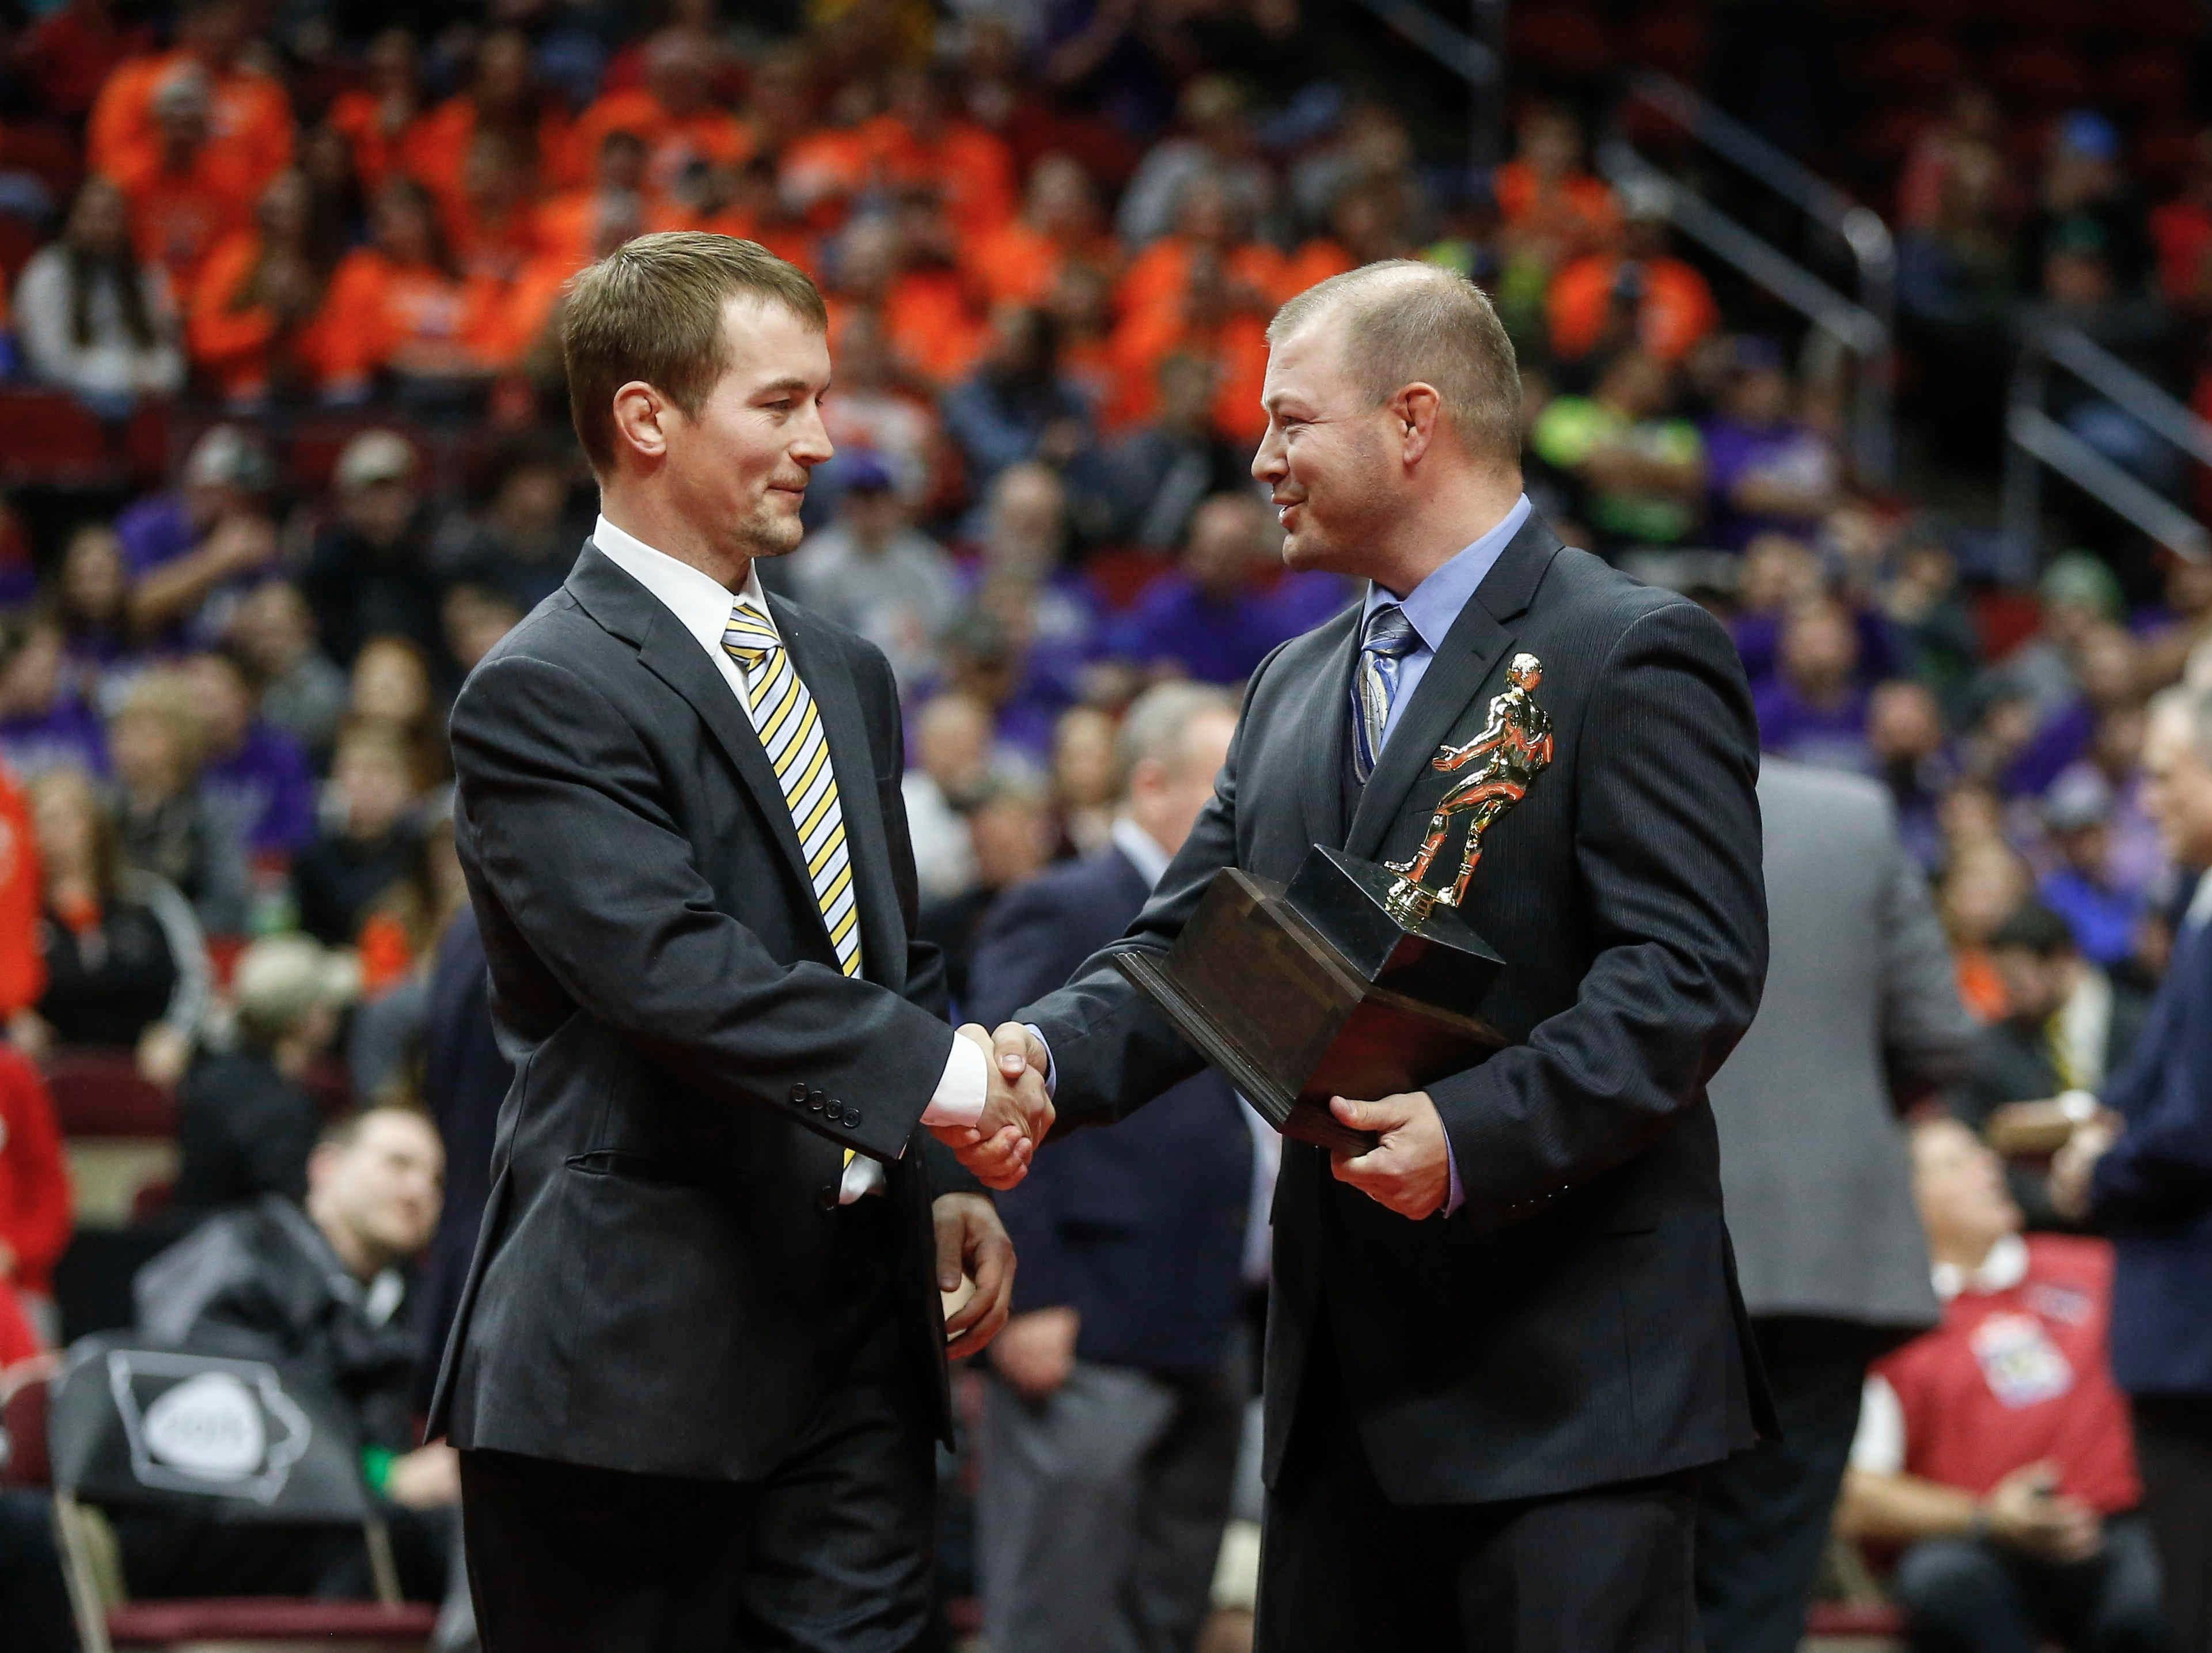 Emmetsburg head wrestling coach Tyler Bjustrom, left, is presented with the Class 1A wrestling coach of the year prior to the start of the state championship wrestling finals on Saturday, Feb. 16, 2019, at Wells Fargo Arena in Des Moines.